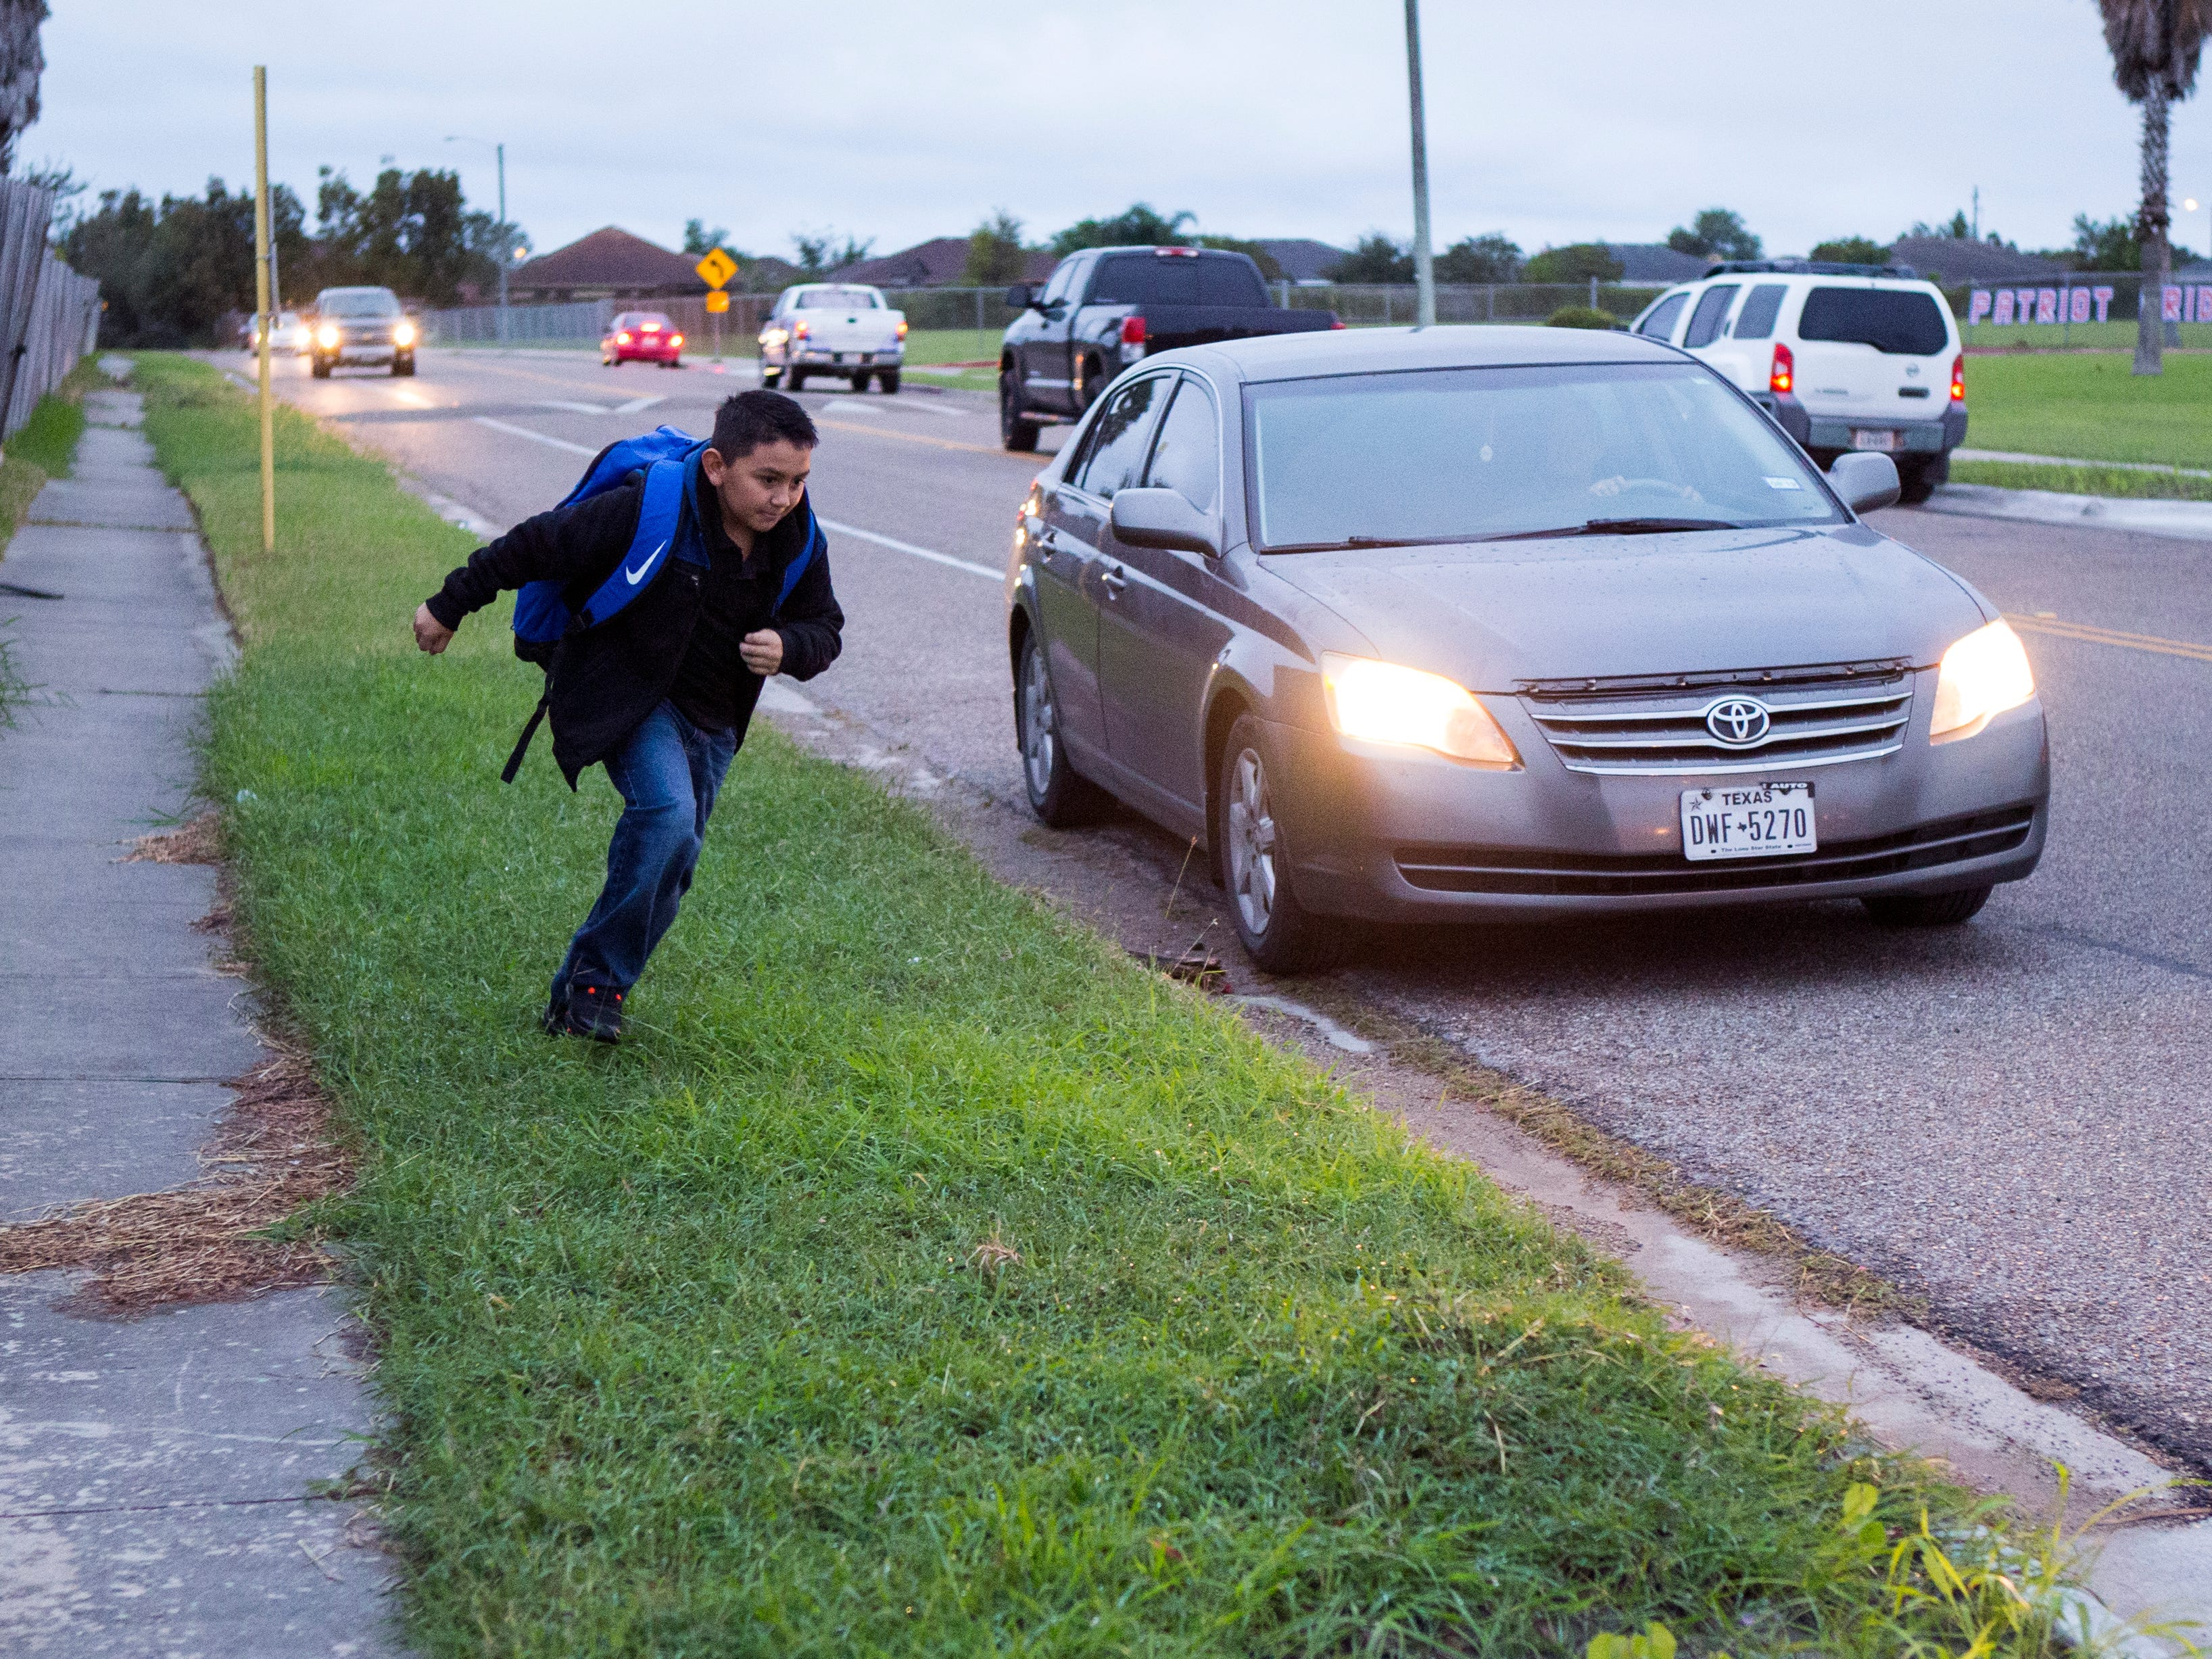 Jonathon Garza, 9, runs across the street to school at Dawson Elementary School to get out of the cold on Tuesday, October 16, 2018. The Coastal Bend will continue to see isolated showers and thunderstorms in the early part of the week and get slightly warmer toward the weekend.